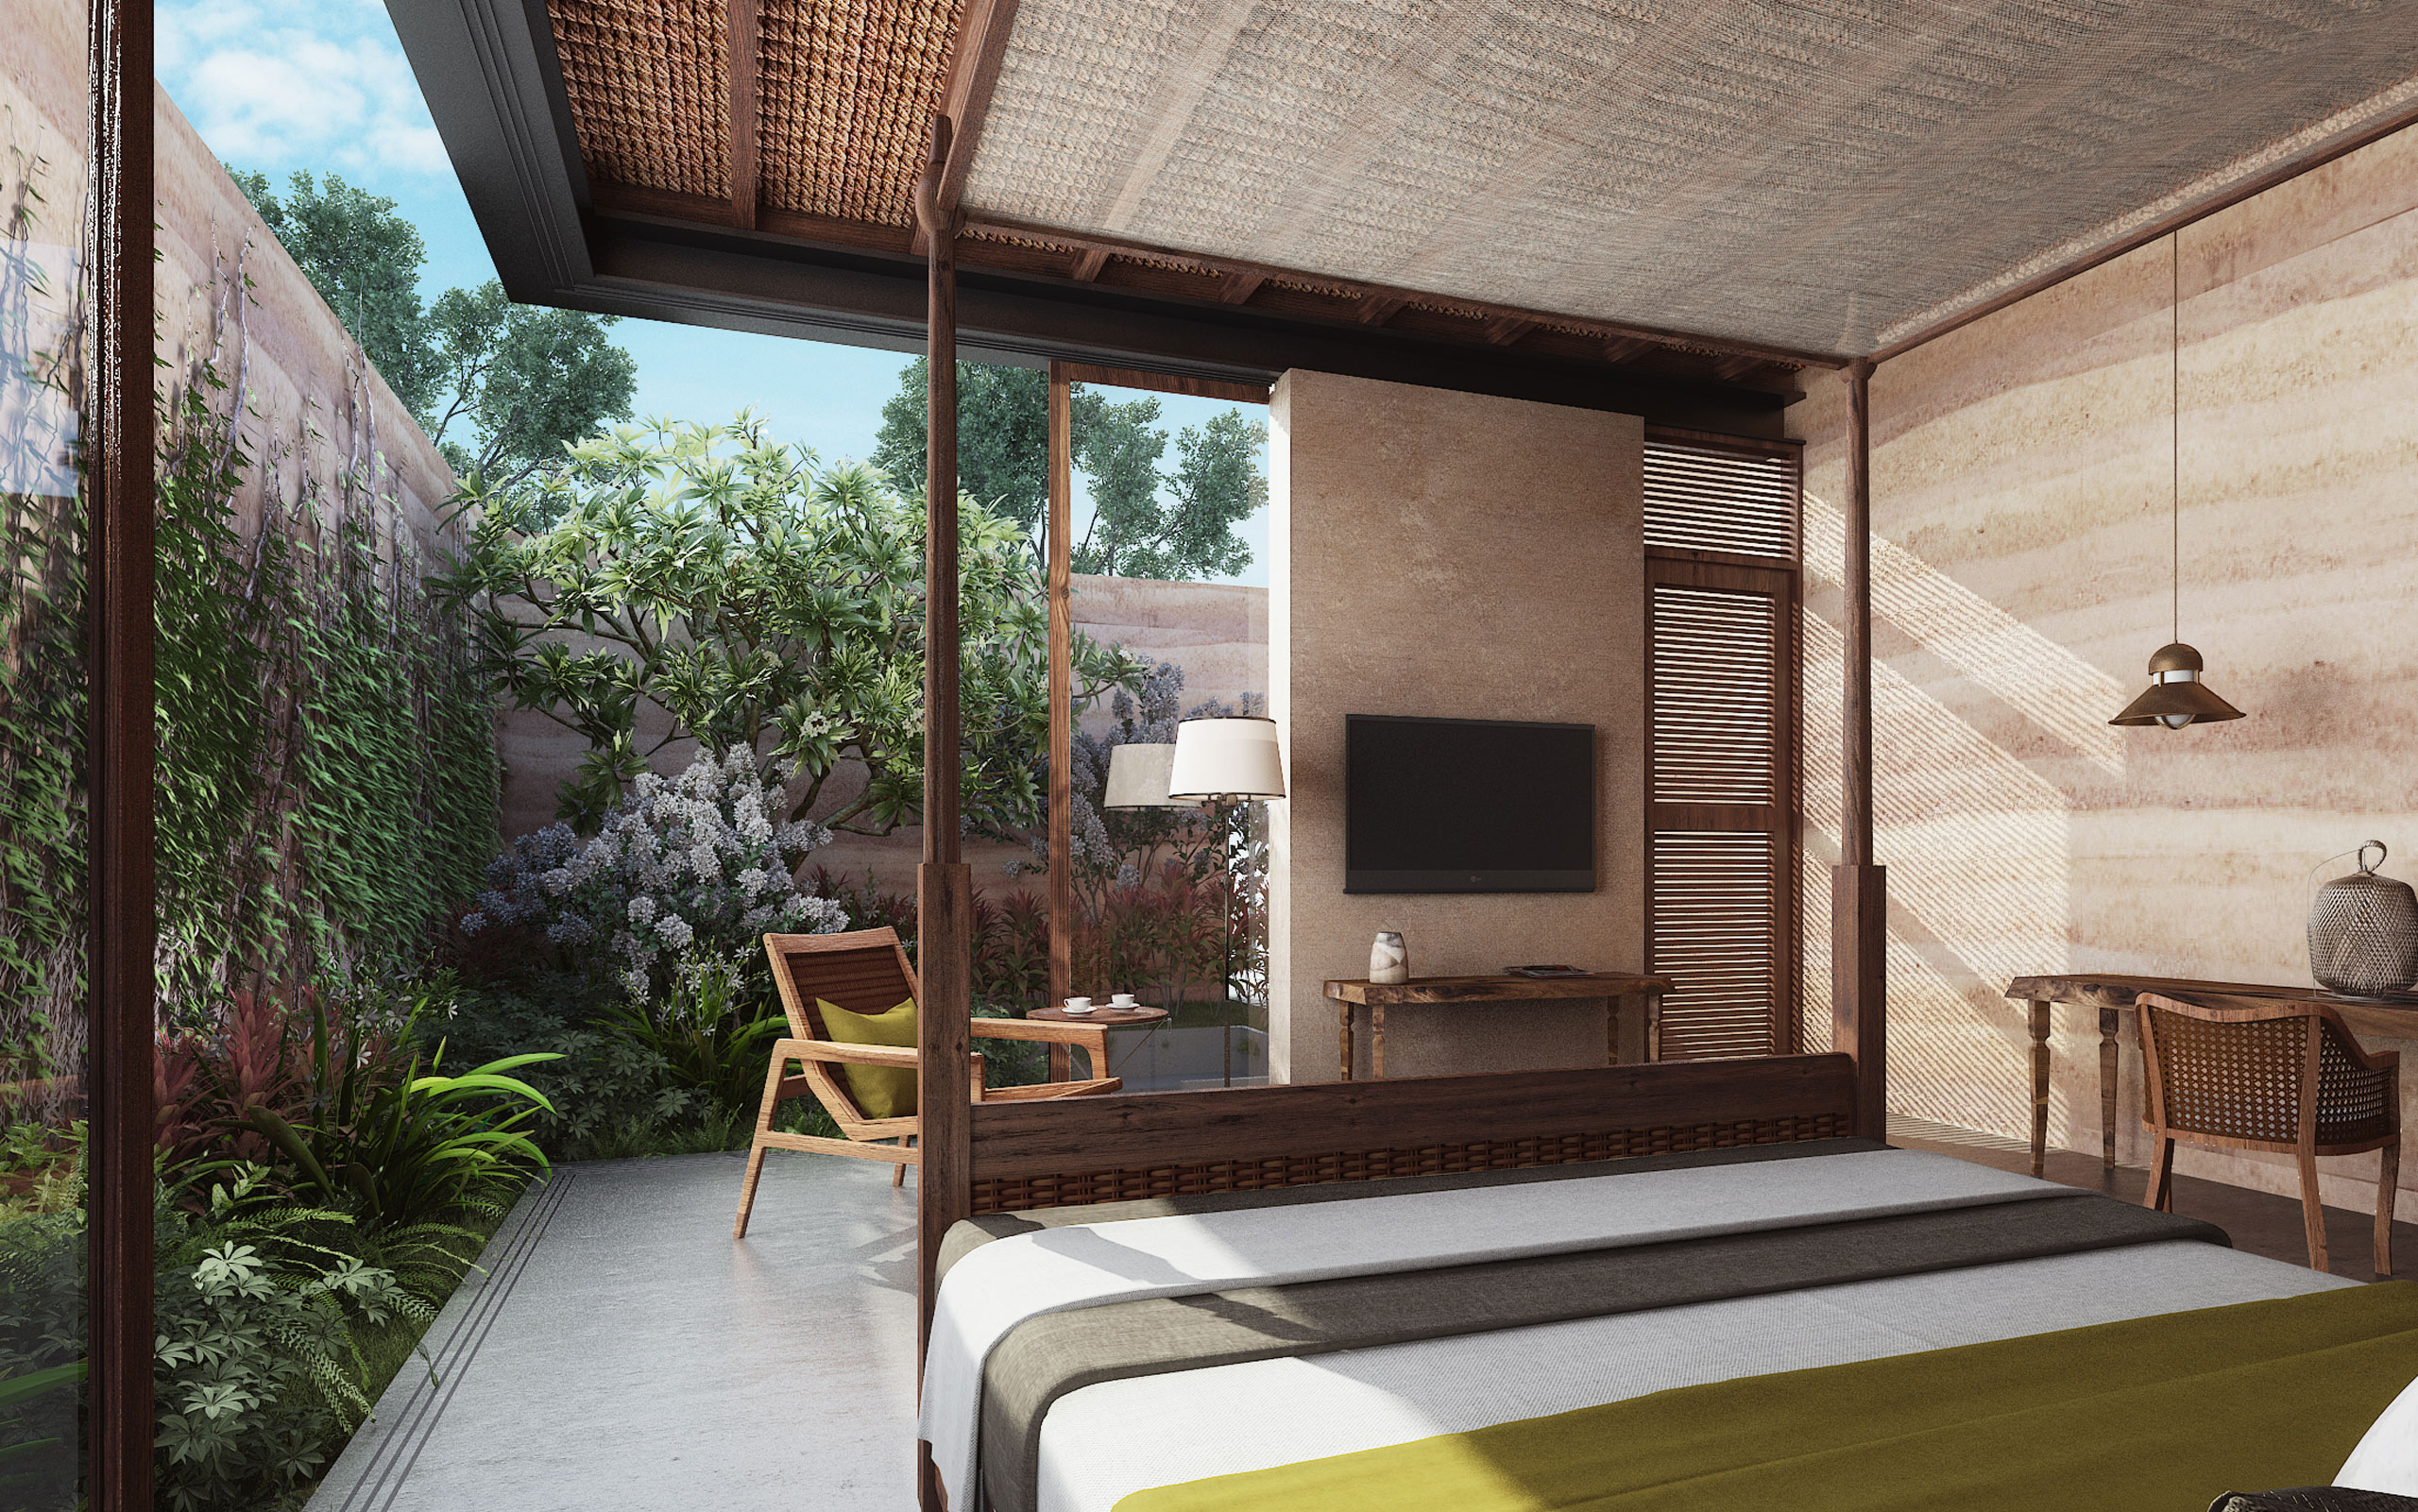 Mandwa Resort - Guest Bedroom and Courtyard